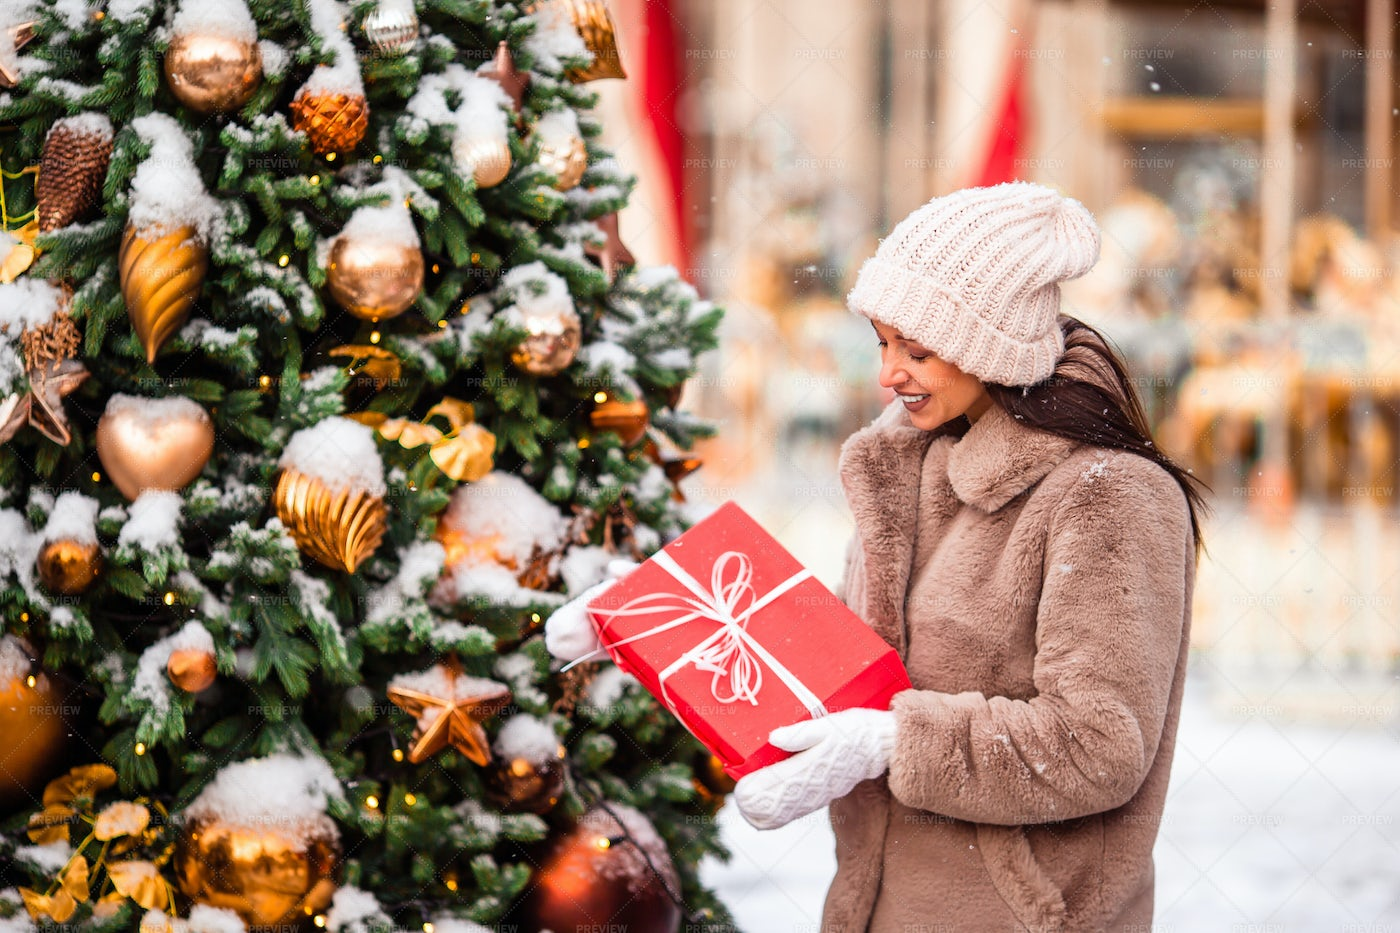 Putting Charity Gift Under Tree: Stock Photos